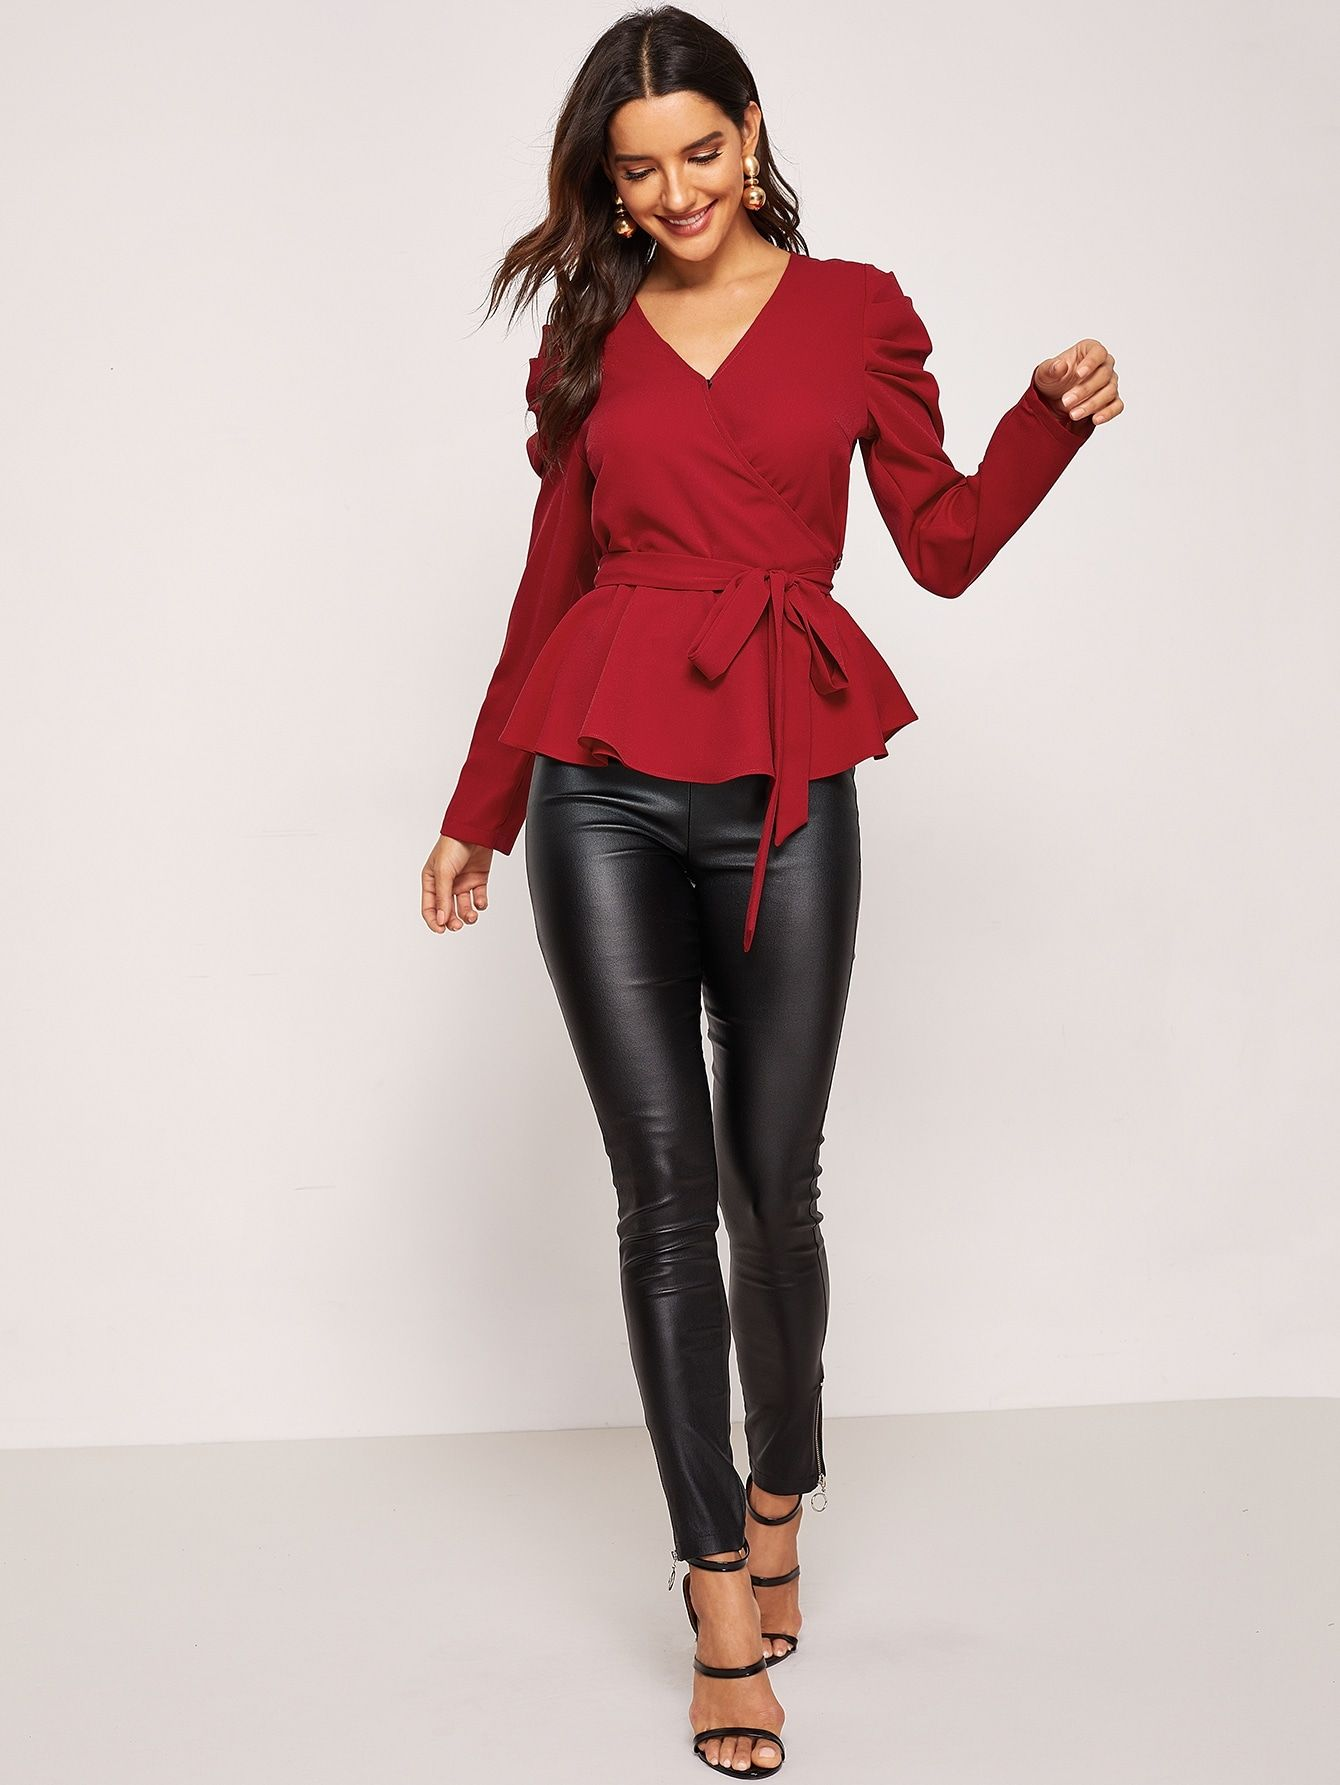 459bd6c668d Casual Belted Plain Shirt Regular Fit V Neck Long Sleeve Puff Sleeve  Pullovers Burgundy Regular Length Surplice Neck Gathered Sleeve Belted Top